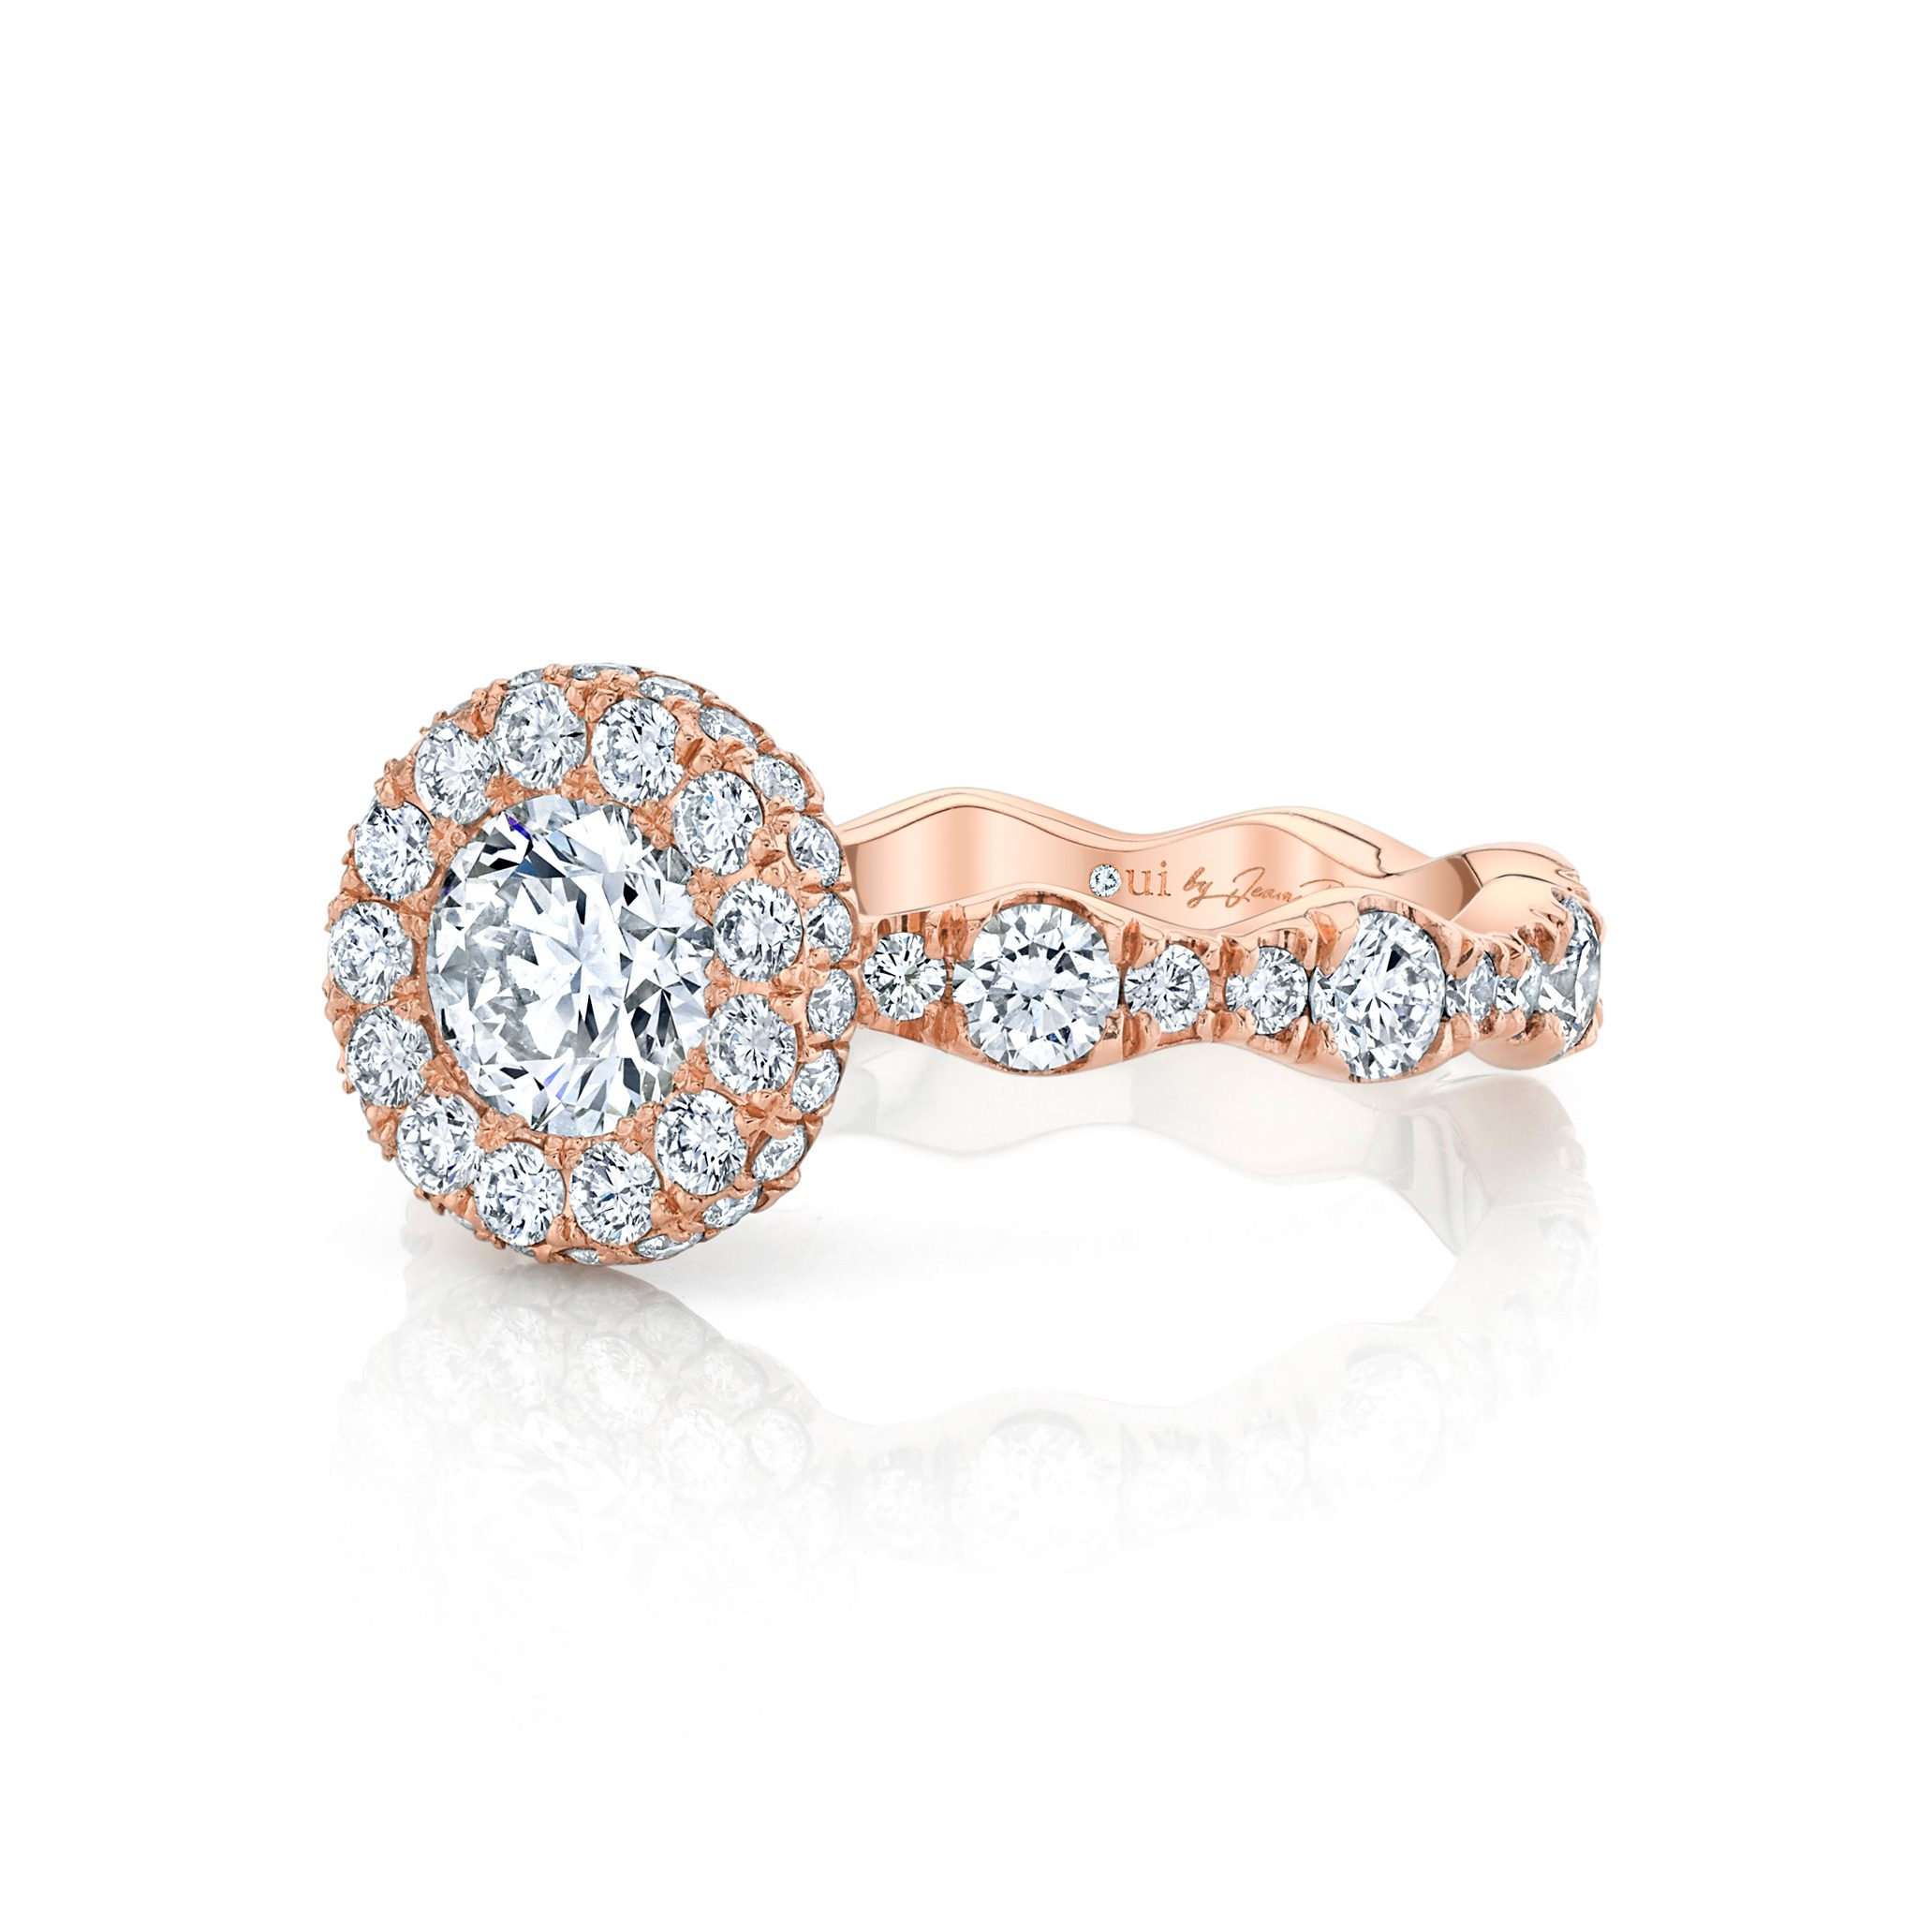 Yvonne Round Brilliant Seamless Halo® Engagement Ring 18k Rose Gold Side View by Oui by Jean Dousset